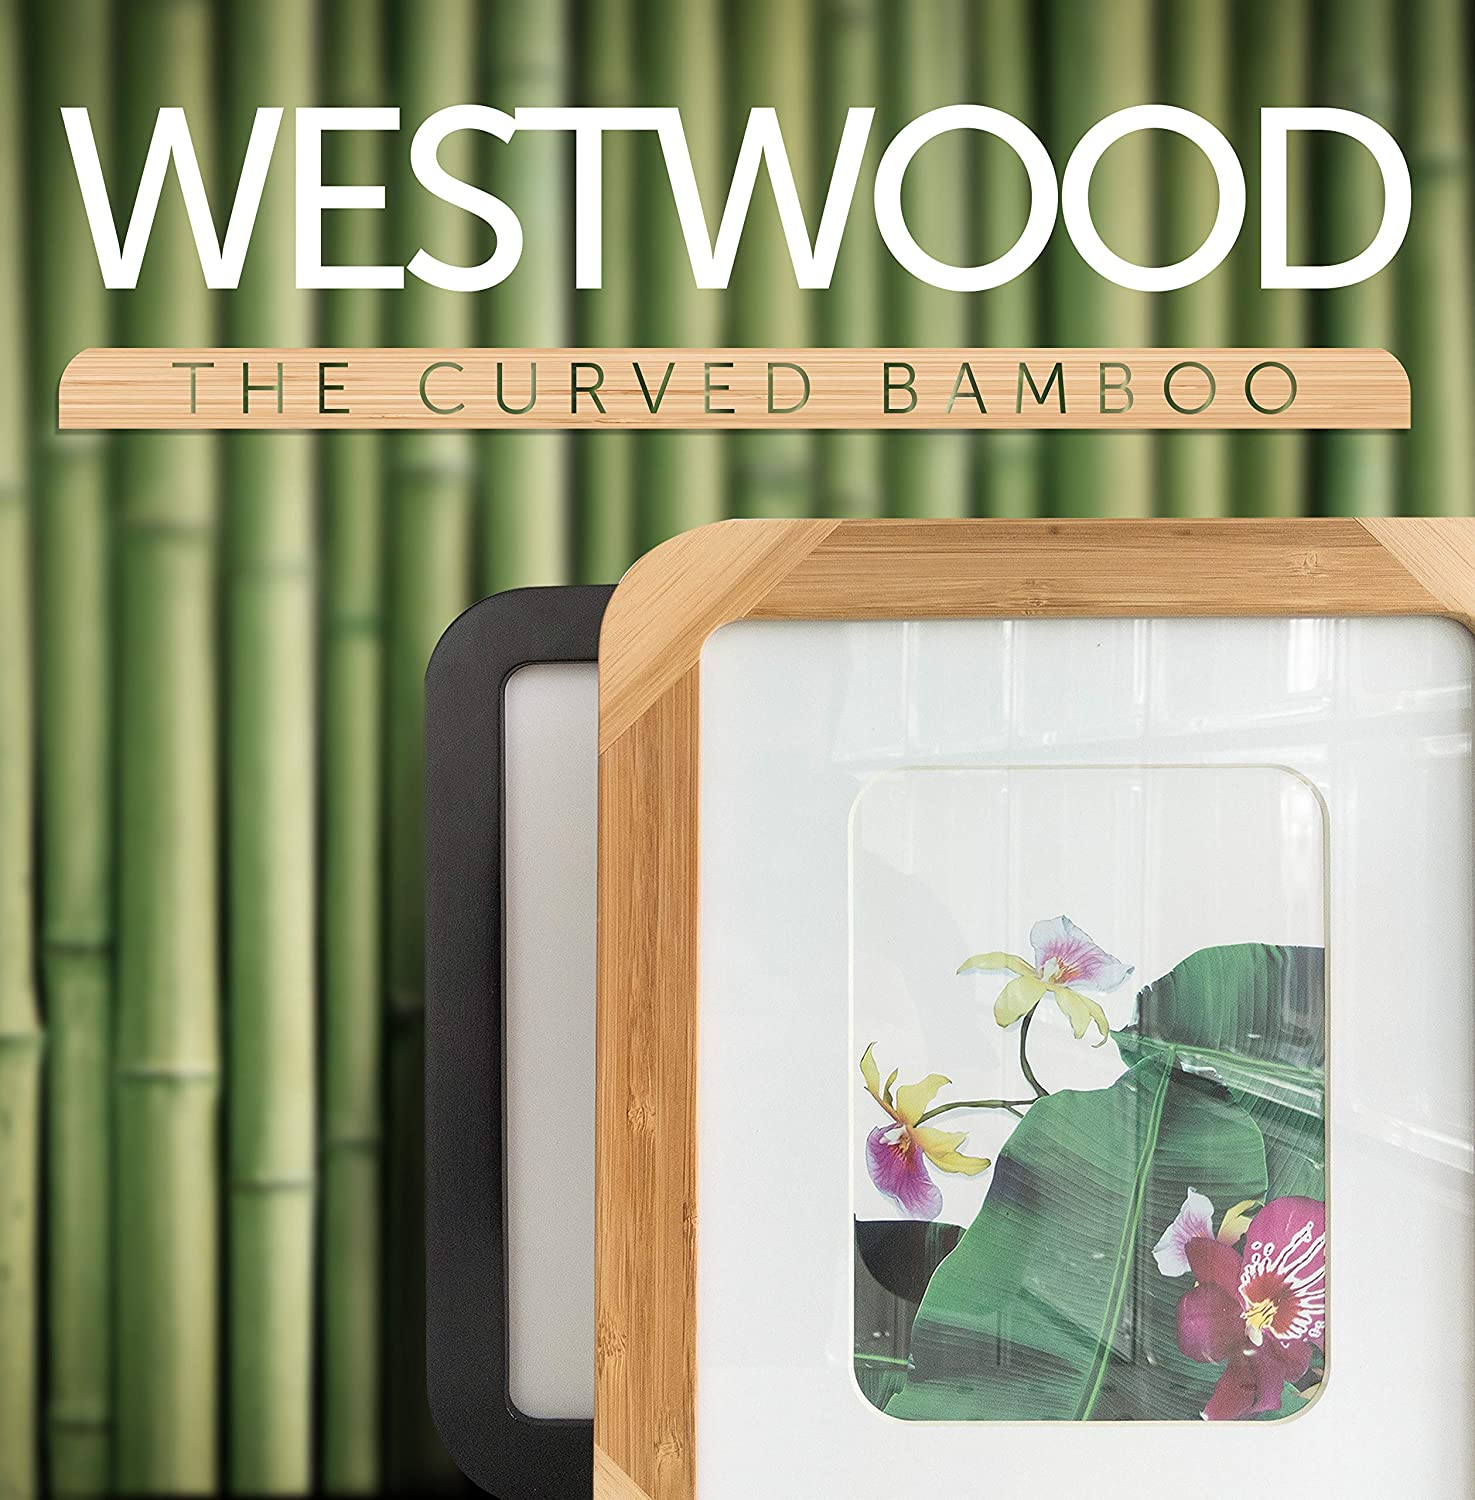 Amazon.com: EDGEWOOD Westwood - Redondo, 8x10: Home & Kitchen